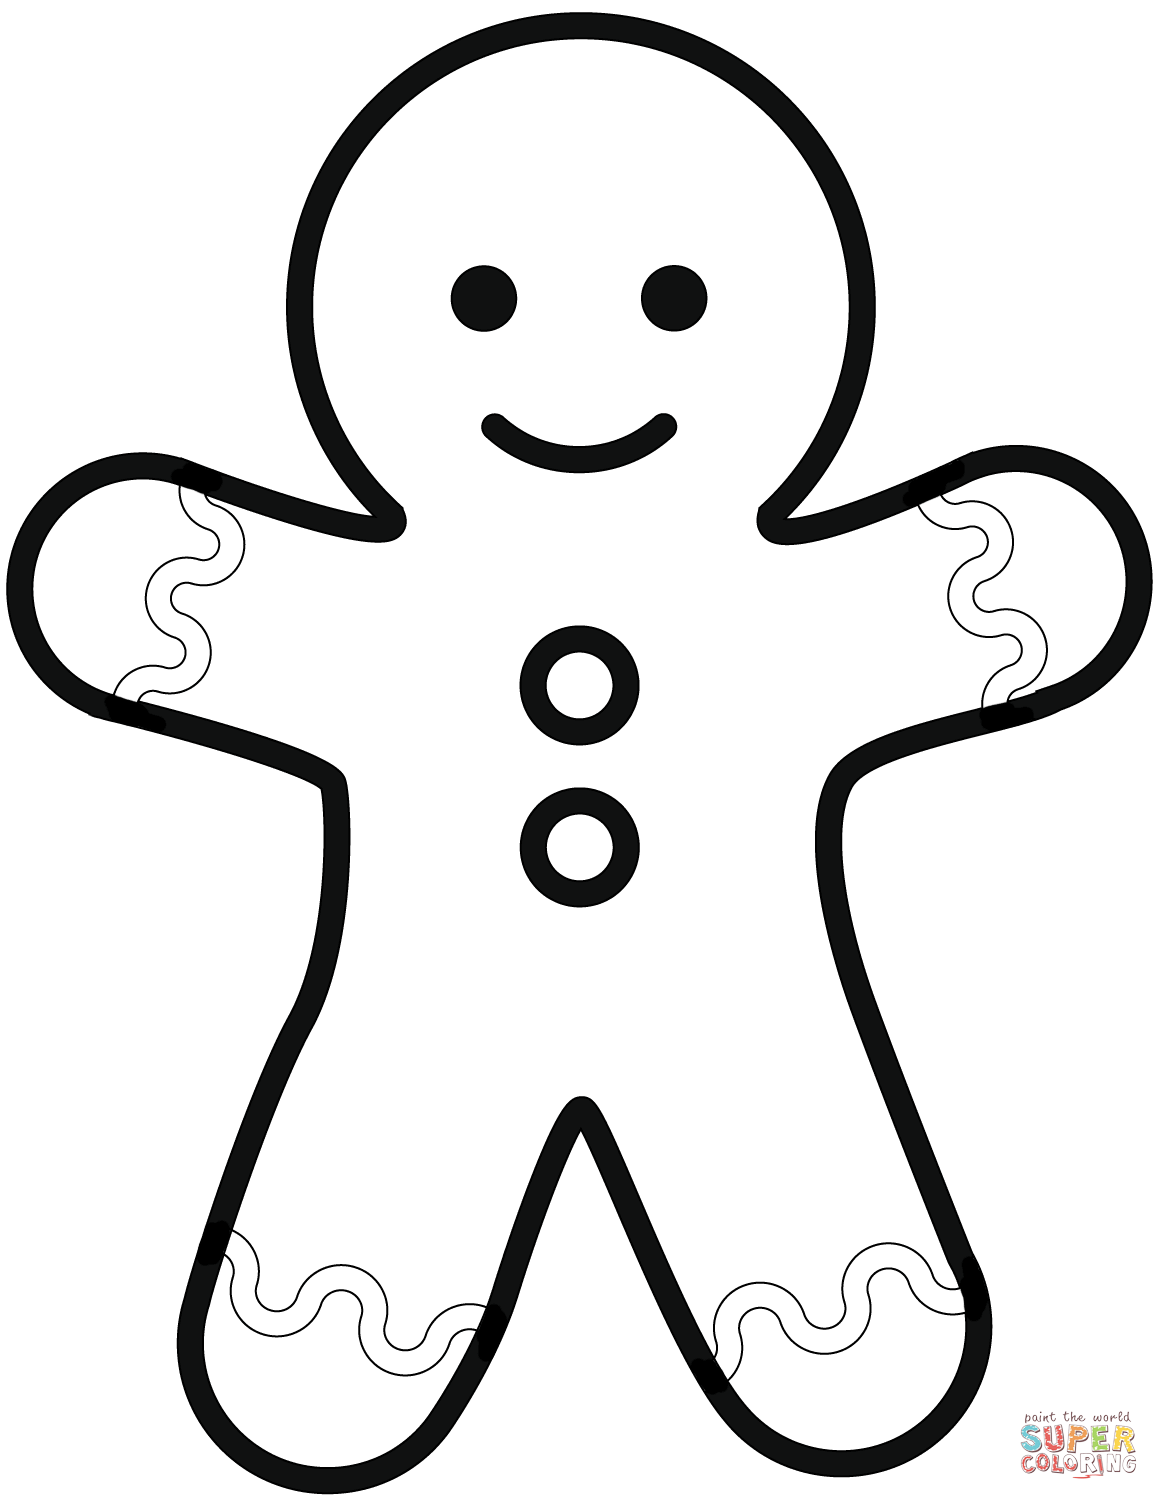 Simple Gingerbread Man Coloring Page Free Printable Coloring Pages Gingerbread Man Coloring Page Christmas Coloring Pages Christmas Ornament Coloring Page